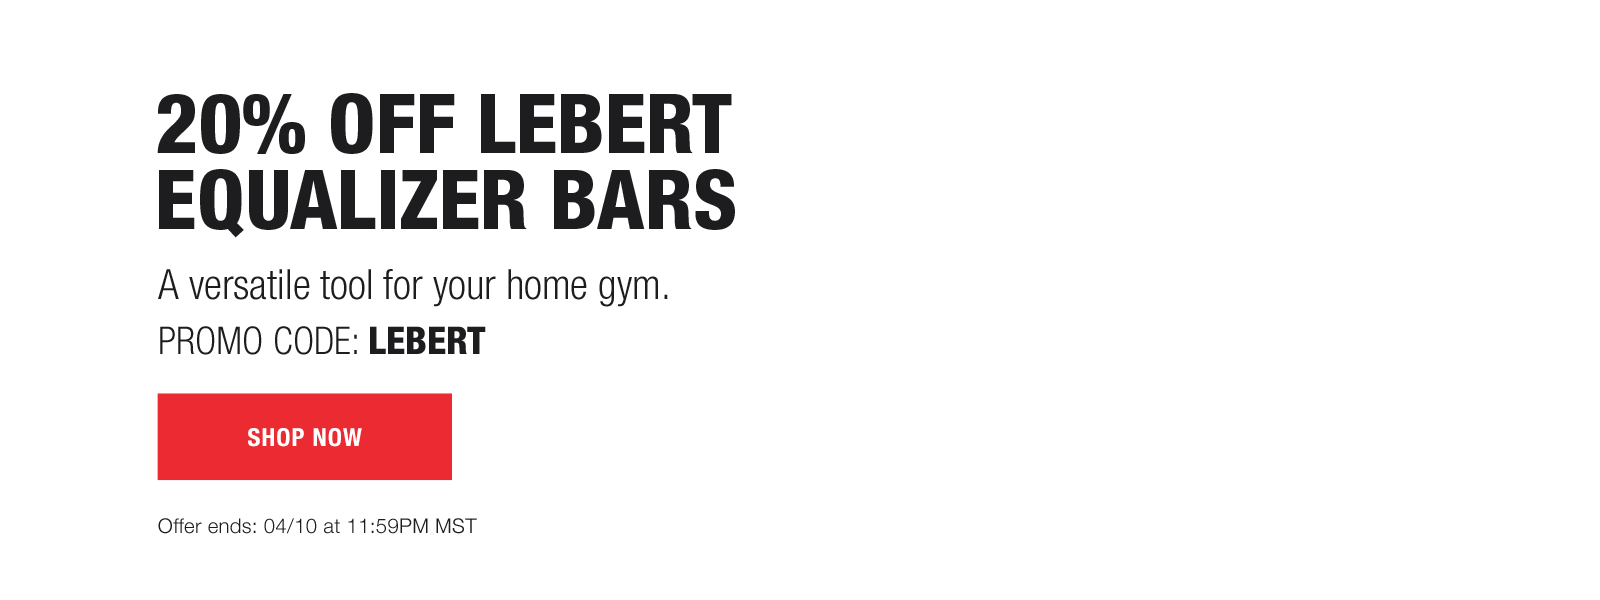 20% off Lebert with code LEBERT